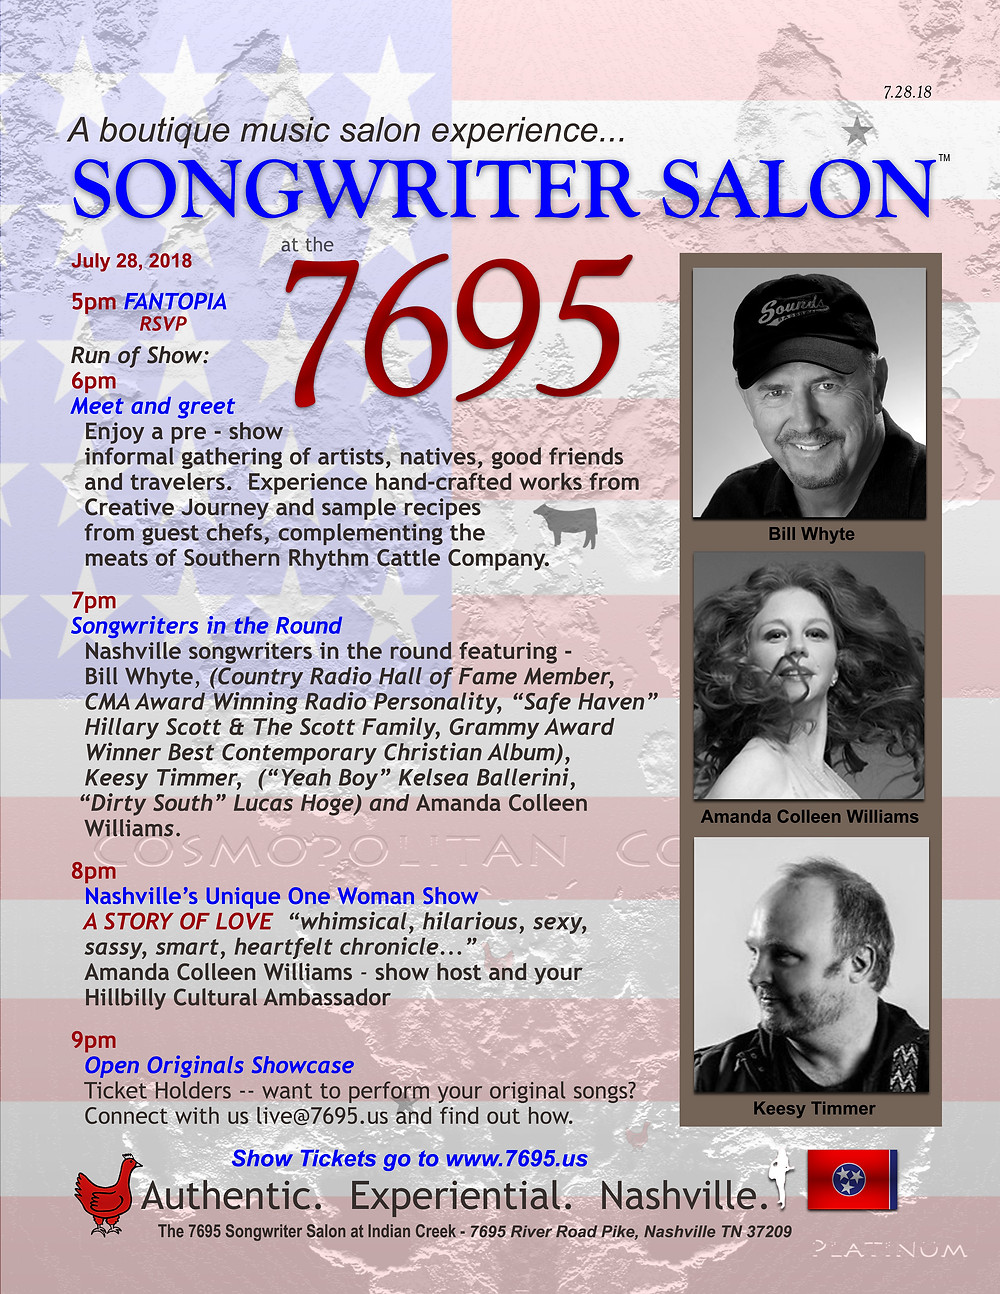 Songwriter Salon at the 7695 Bill Whyte, Keesy Timmer, Amanda Colleen Williams